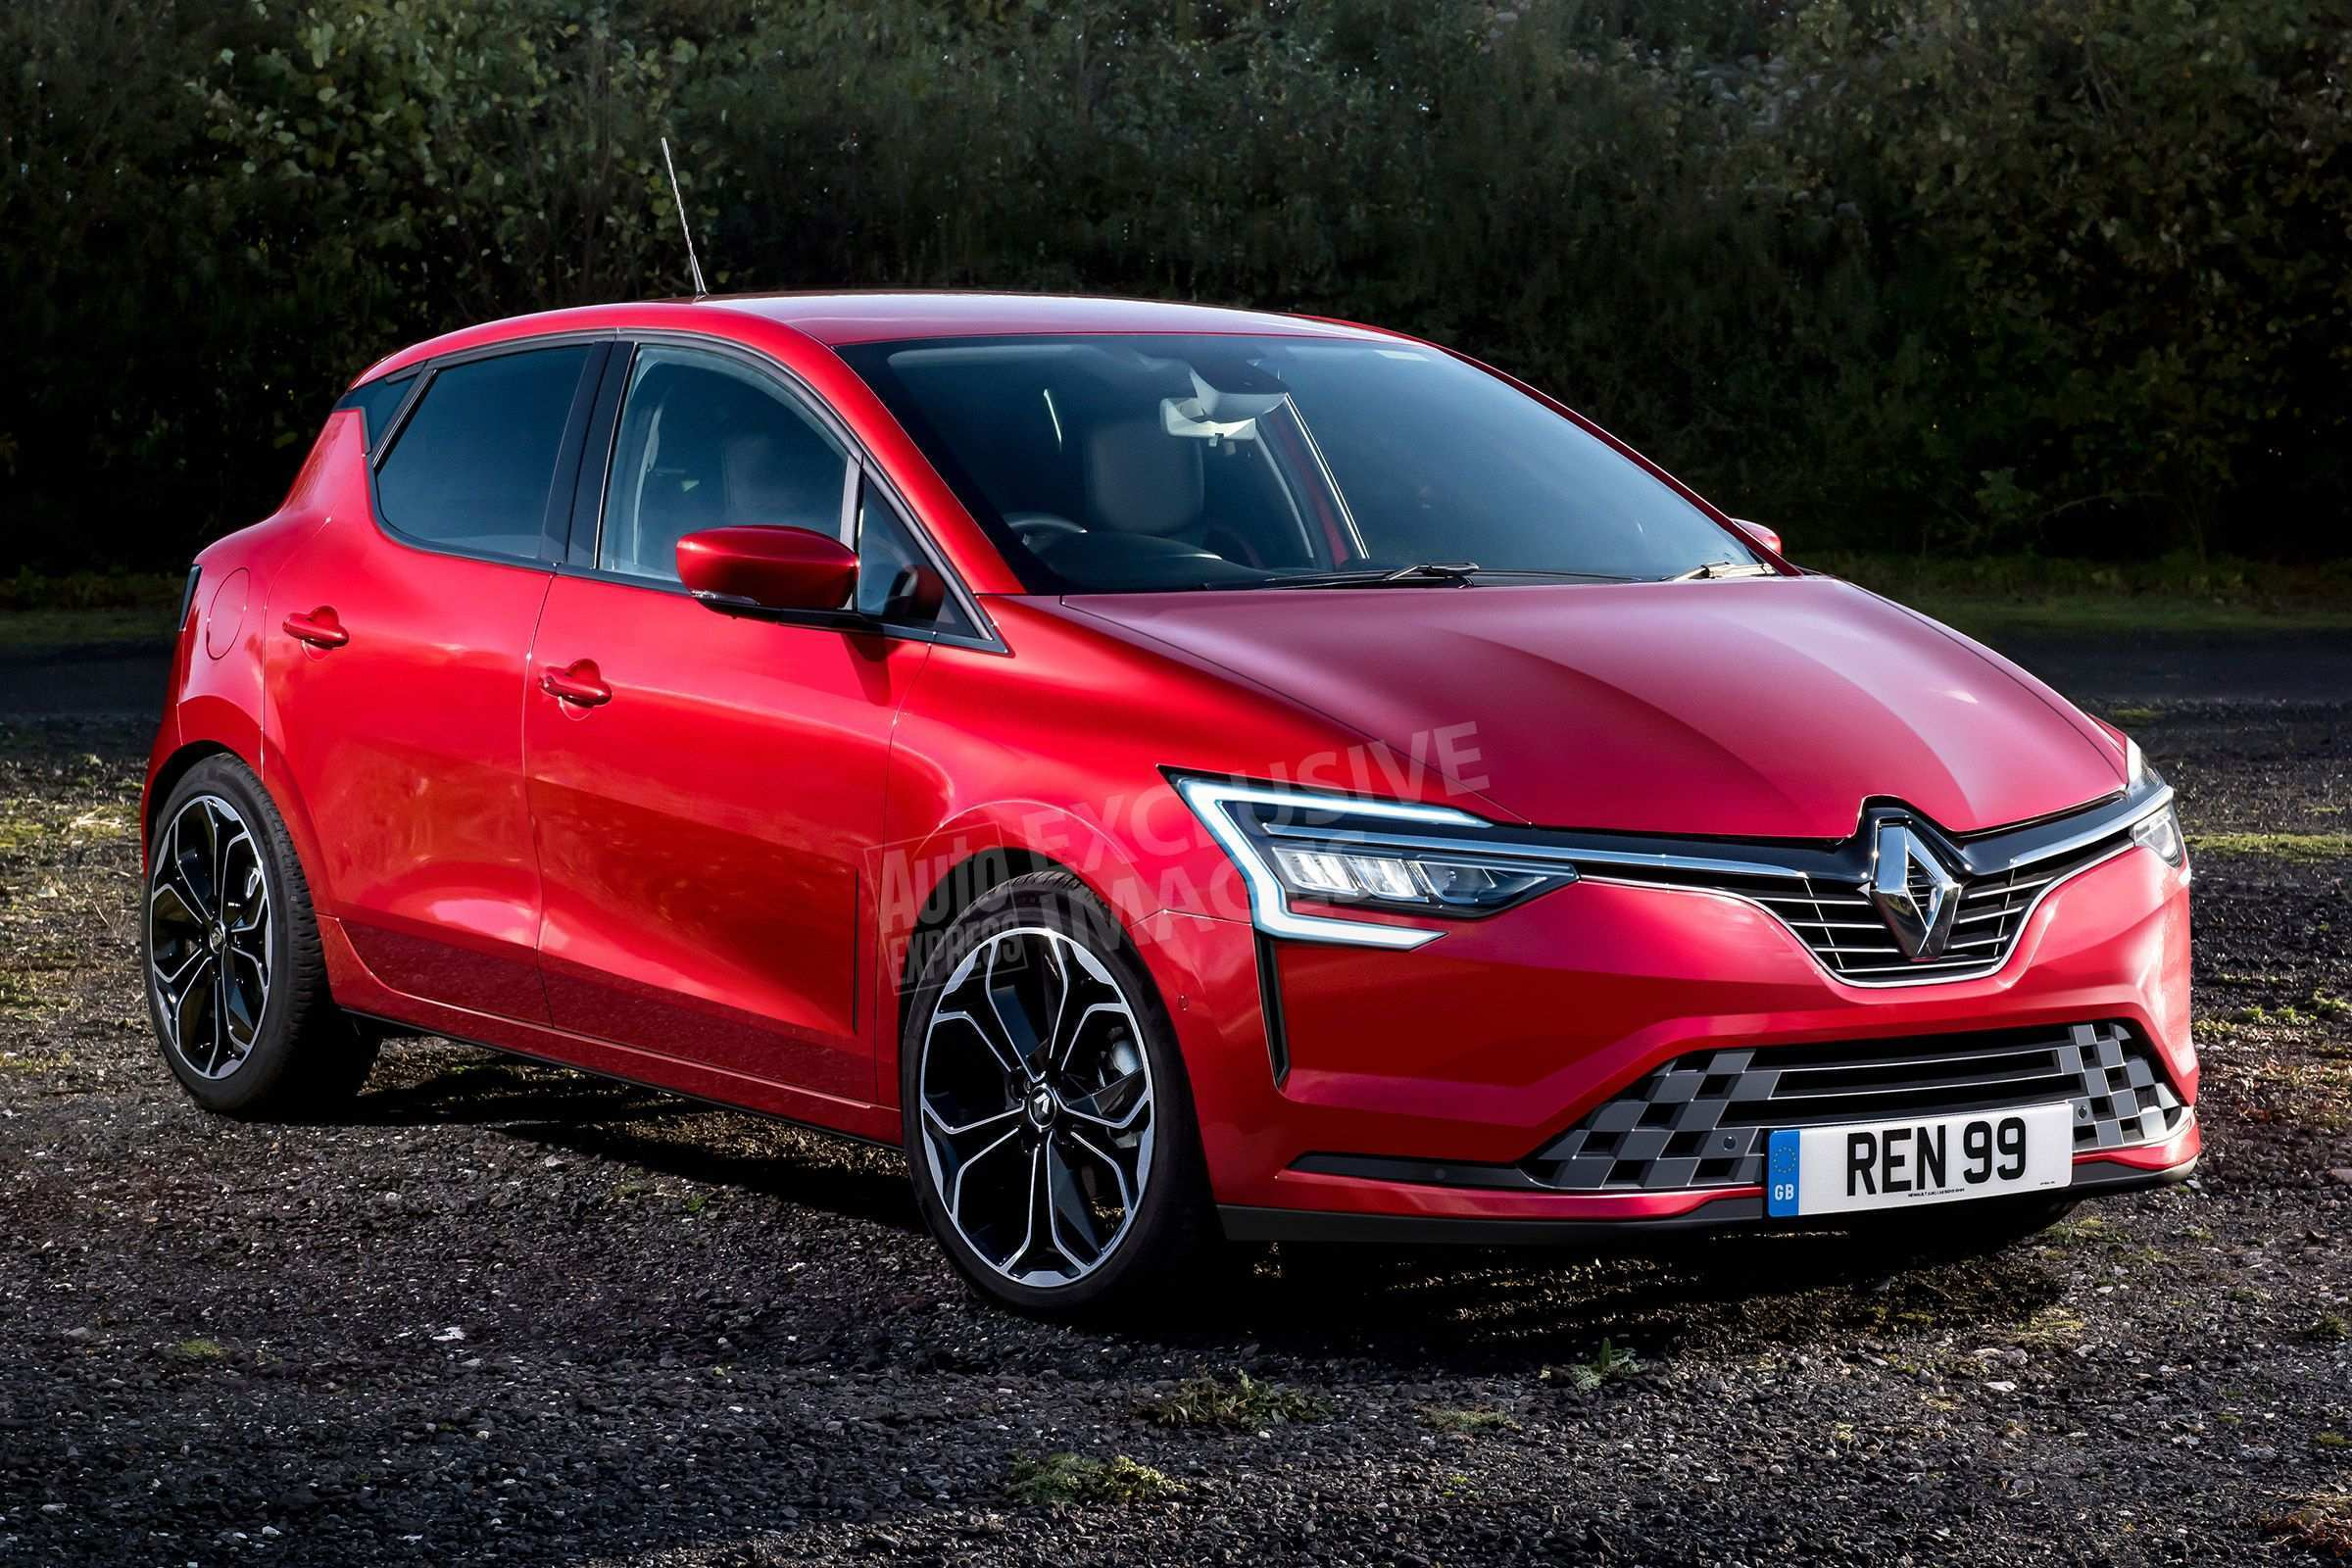 74 Great 2020 Renault Megane SUV Specs and Review by 2020 Renault Megane SUV